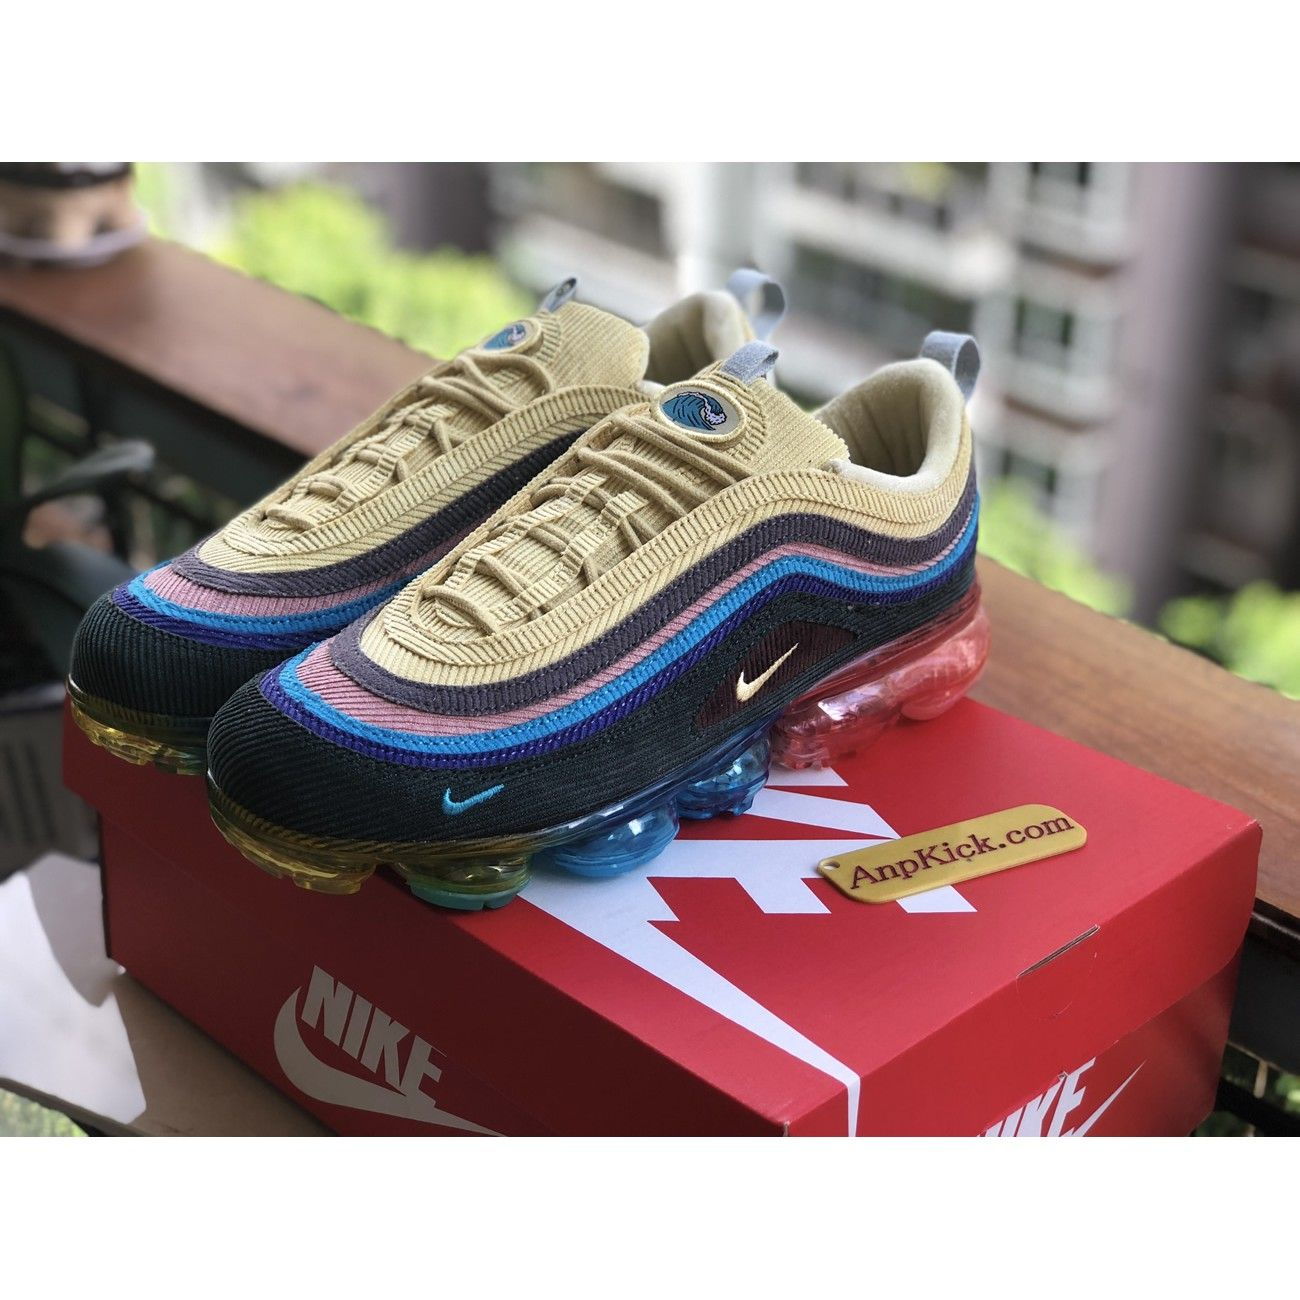 online retailer f0d22 5475c Sean Wotherspoon x Nike Air VaporMax 97 VF SW AJ7291-400 ...